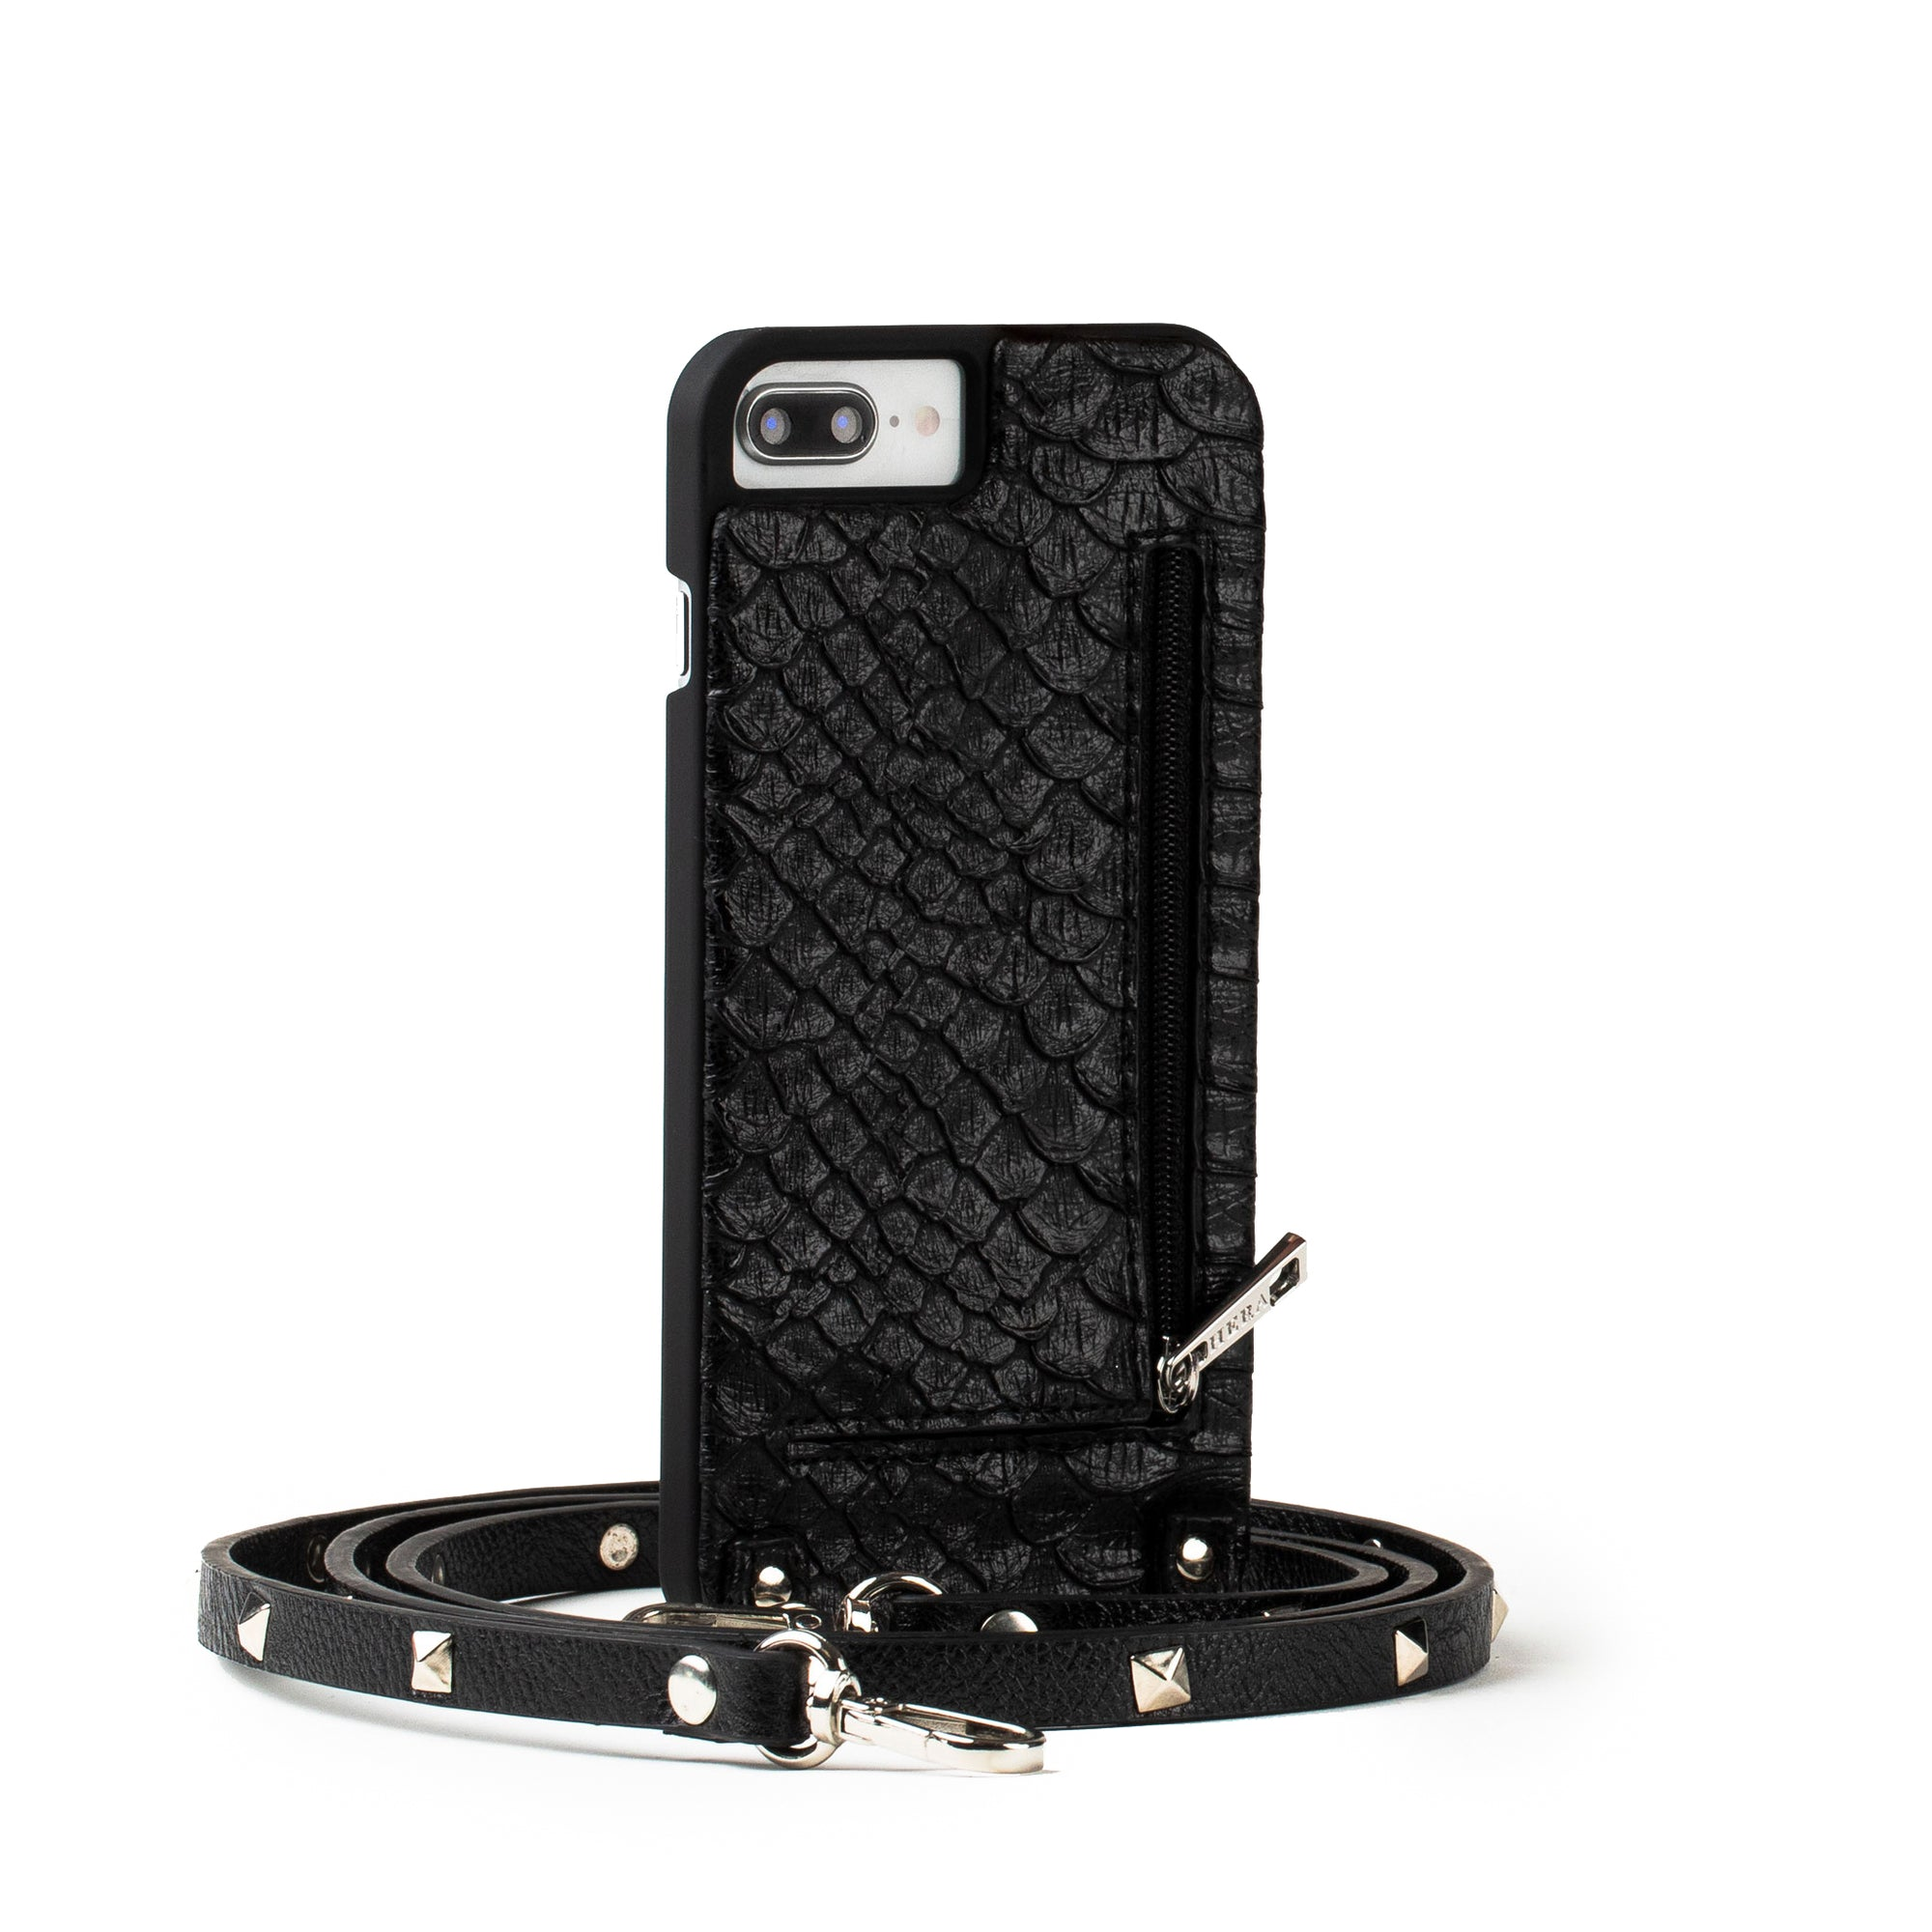 Raine & Vanessa - iPhone Carrying Case for 6+ / 6S+ / 7+ / 8+ (PLUS) - LIMITED EDITION